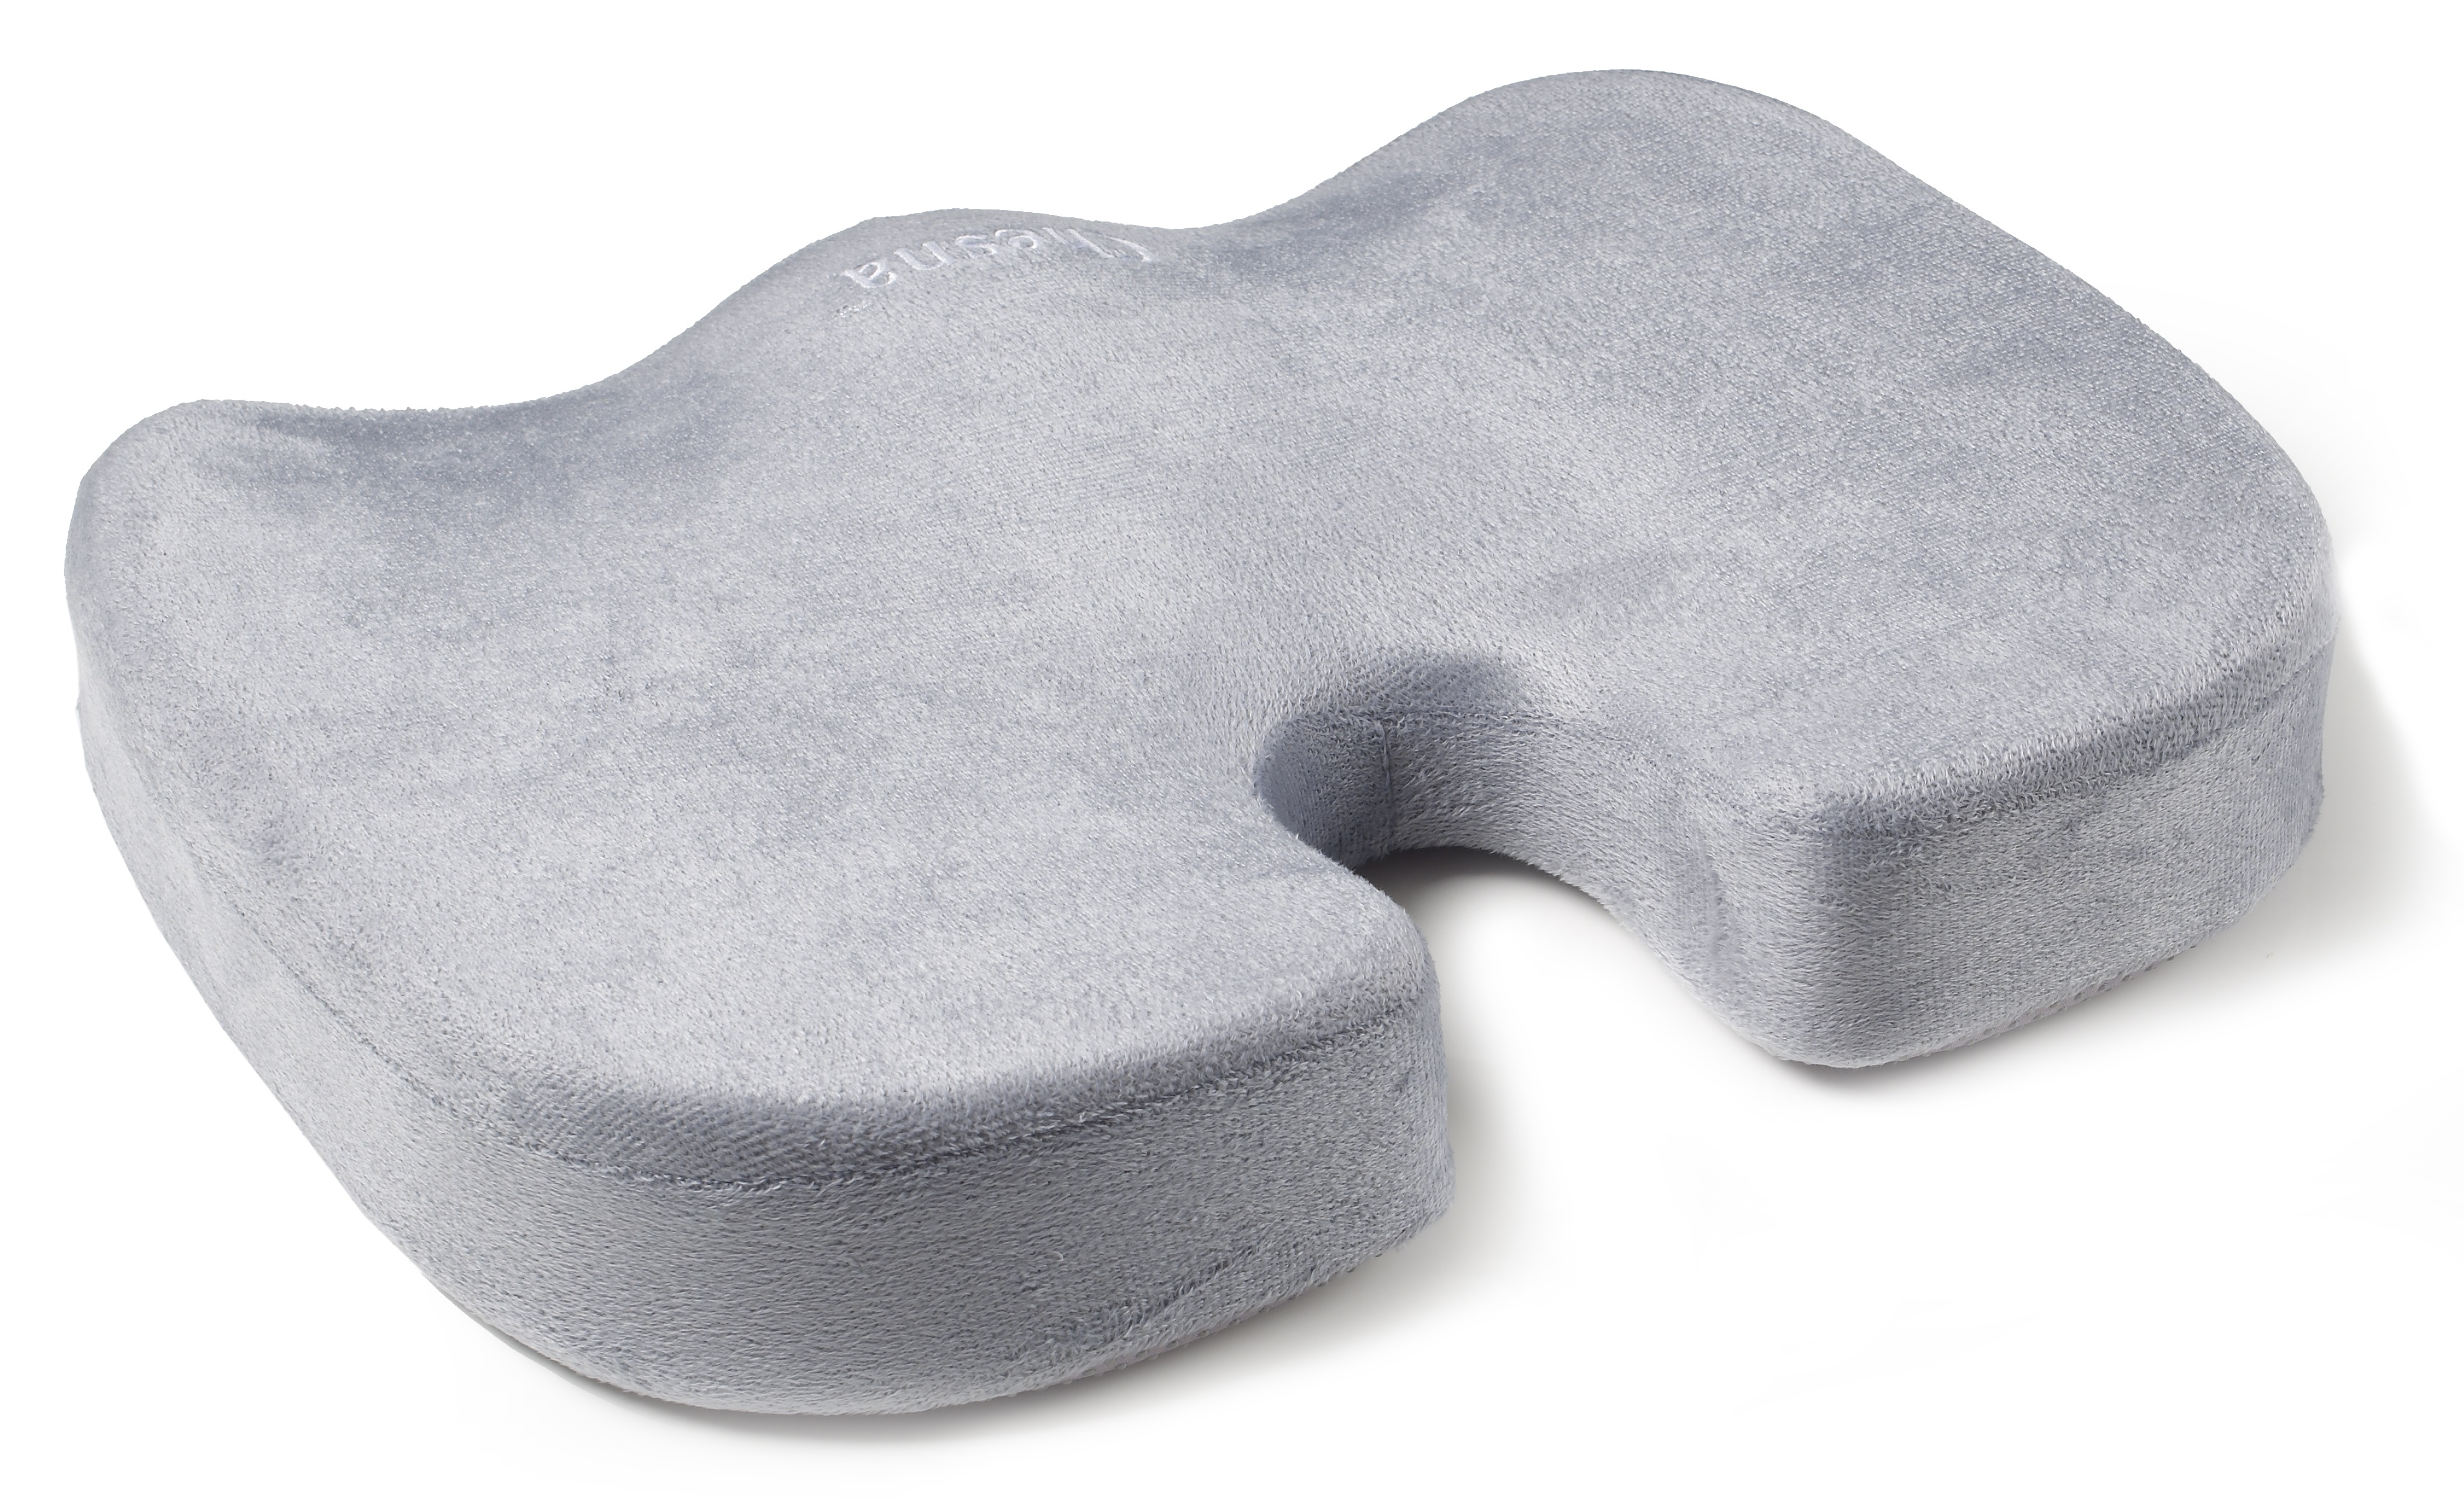 products pillow full amp coccyx supply view essential cushions wheelchair seat size cushion medical